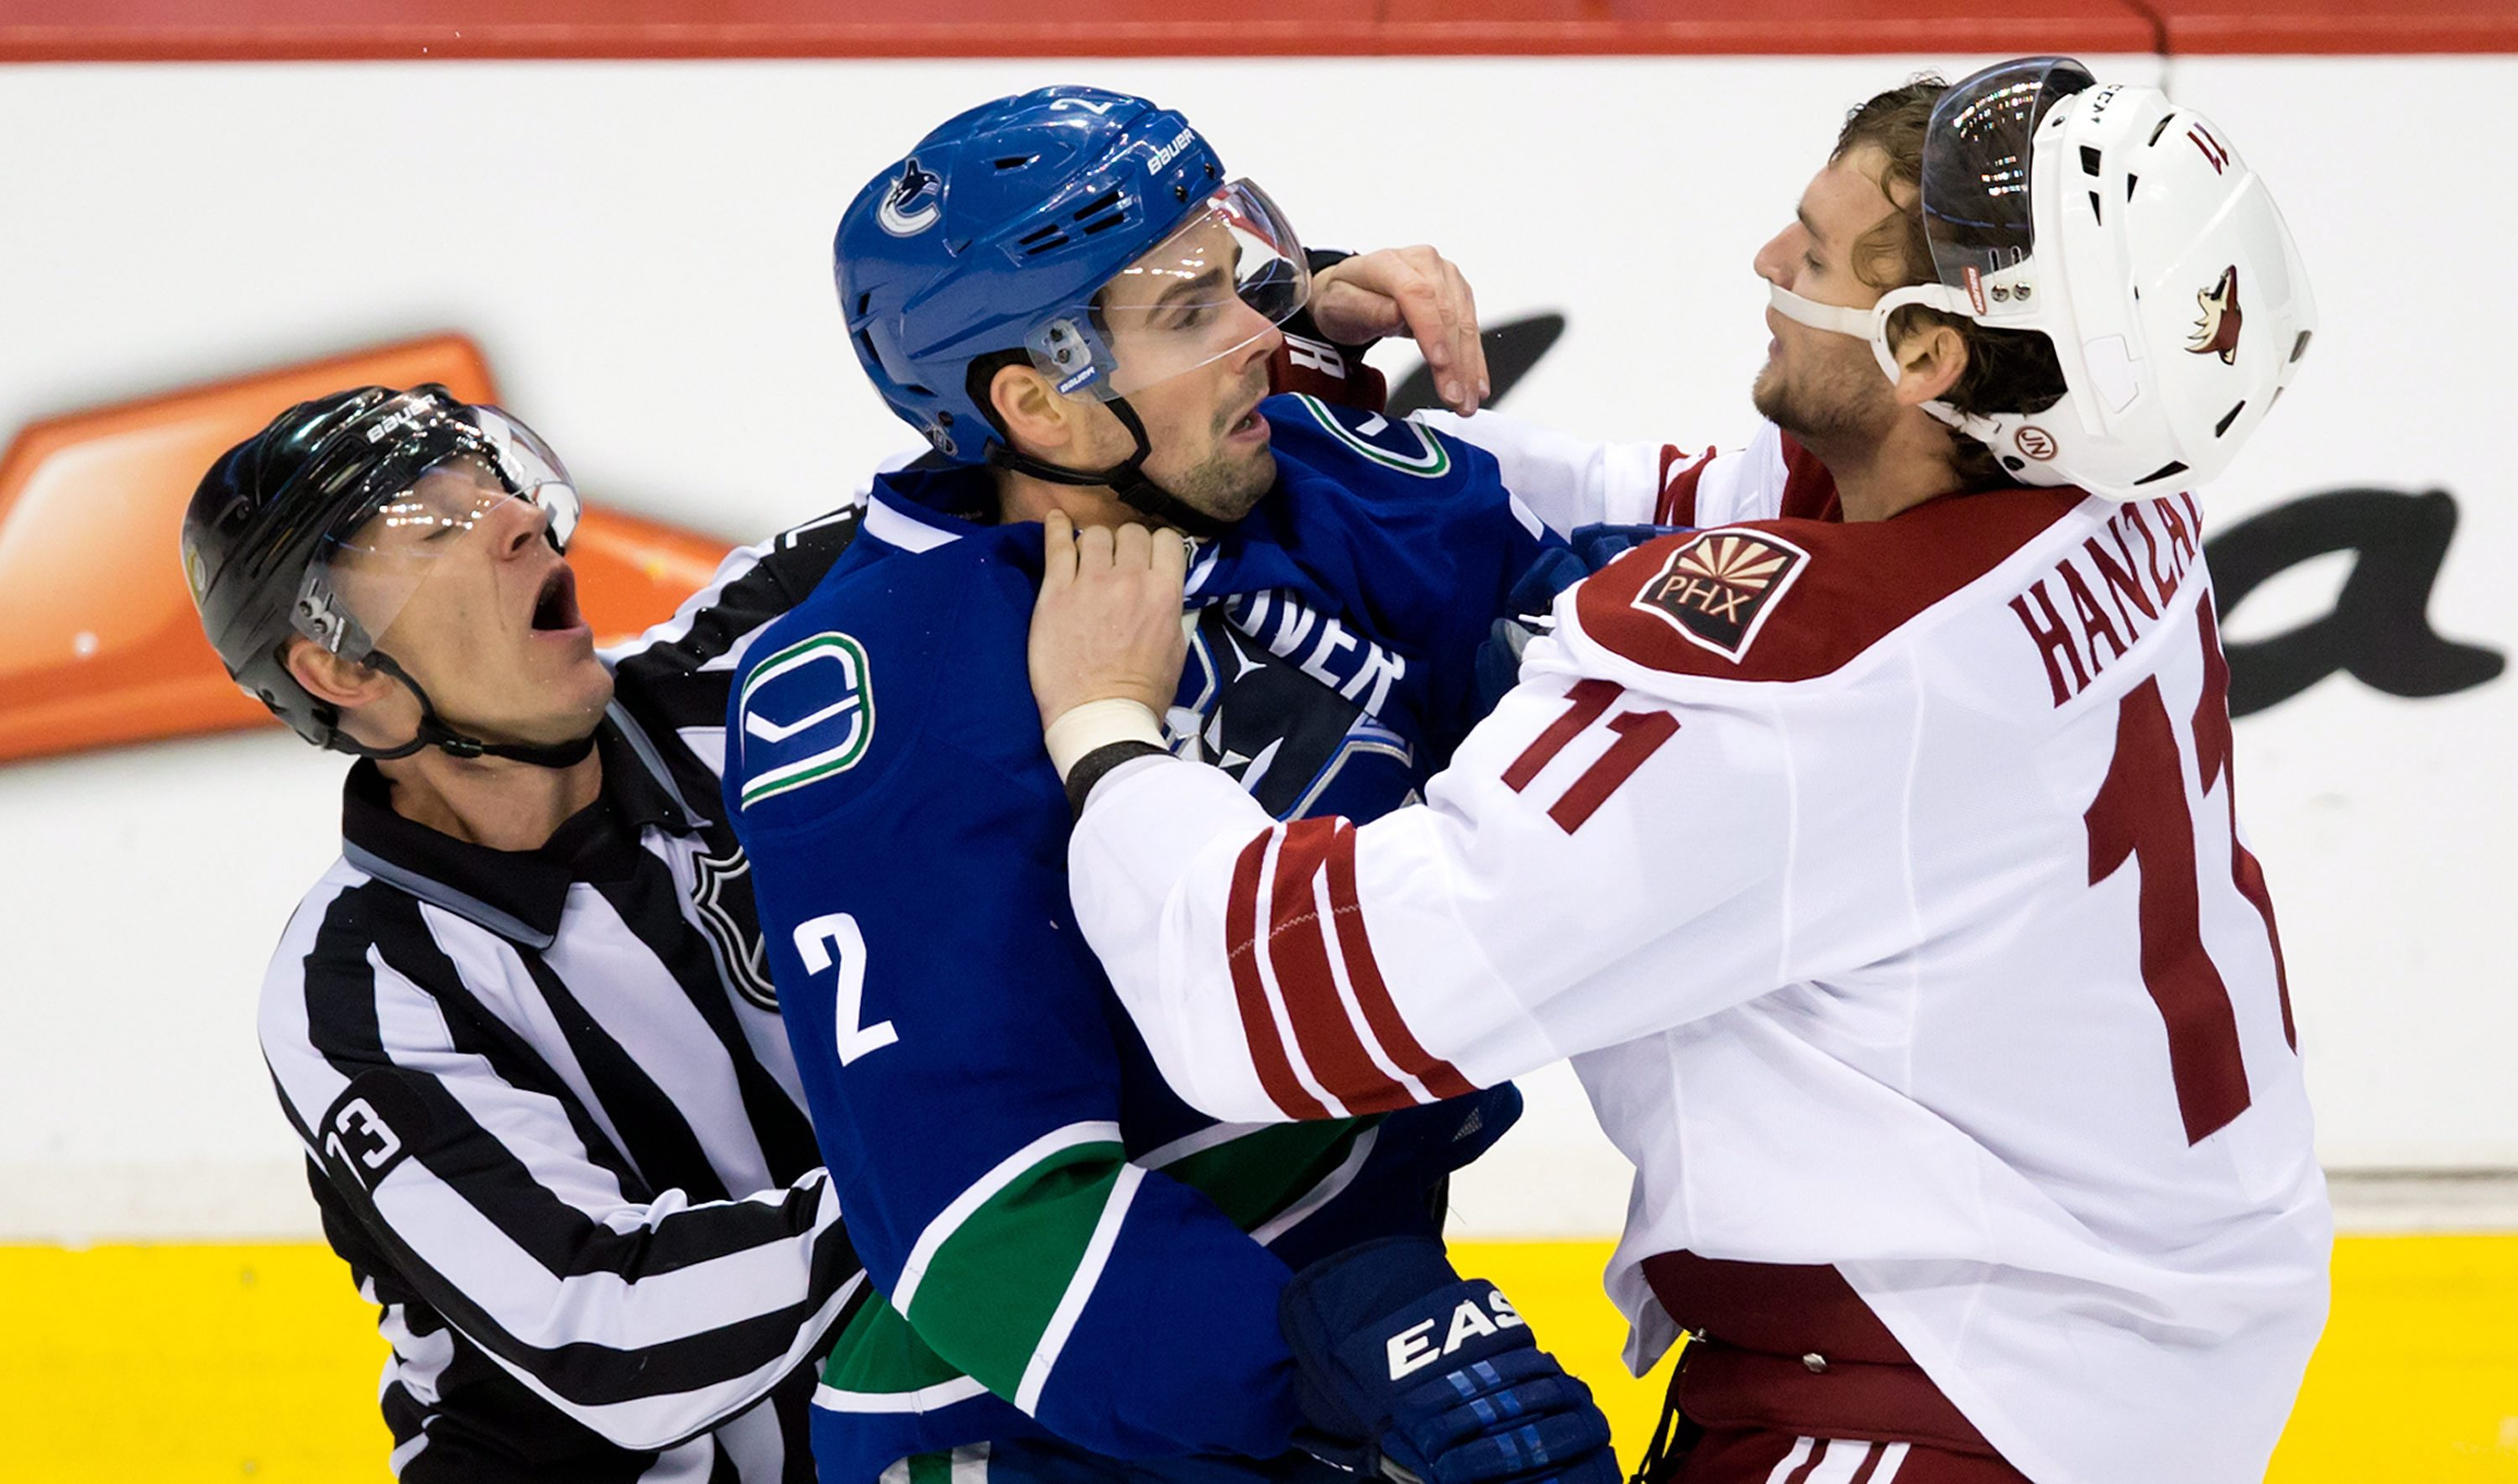 Linesman Vaughan Rody, left, tries to separate Vancouver Canucks' Dan Hamhuis, center, and Phoenix Coyotes' Martin Hanzal, of the Czech Republic, during the third period of an NHL hockey game in Vancouver, British Columbia, on Sunday, Jan. 26, 2014